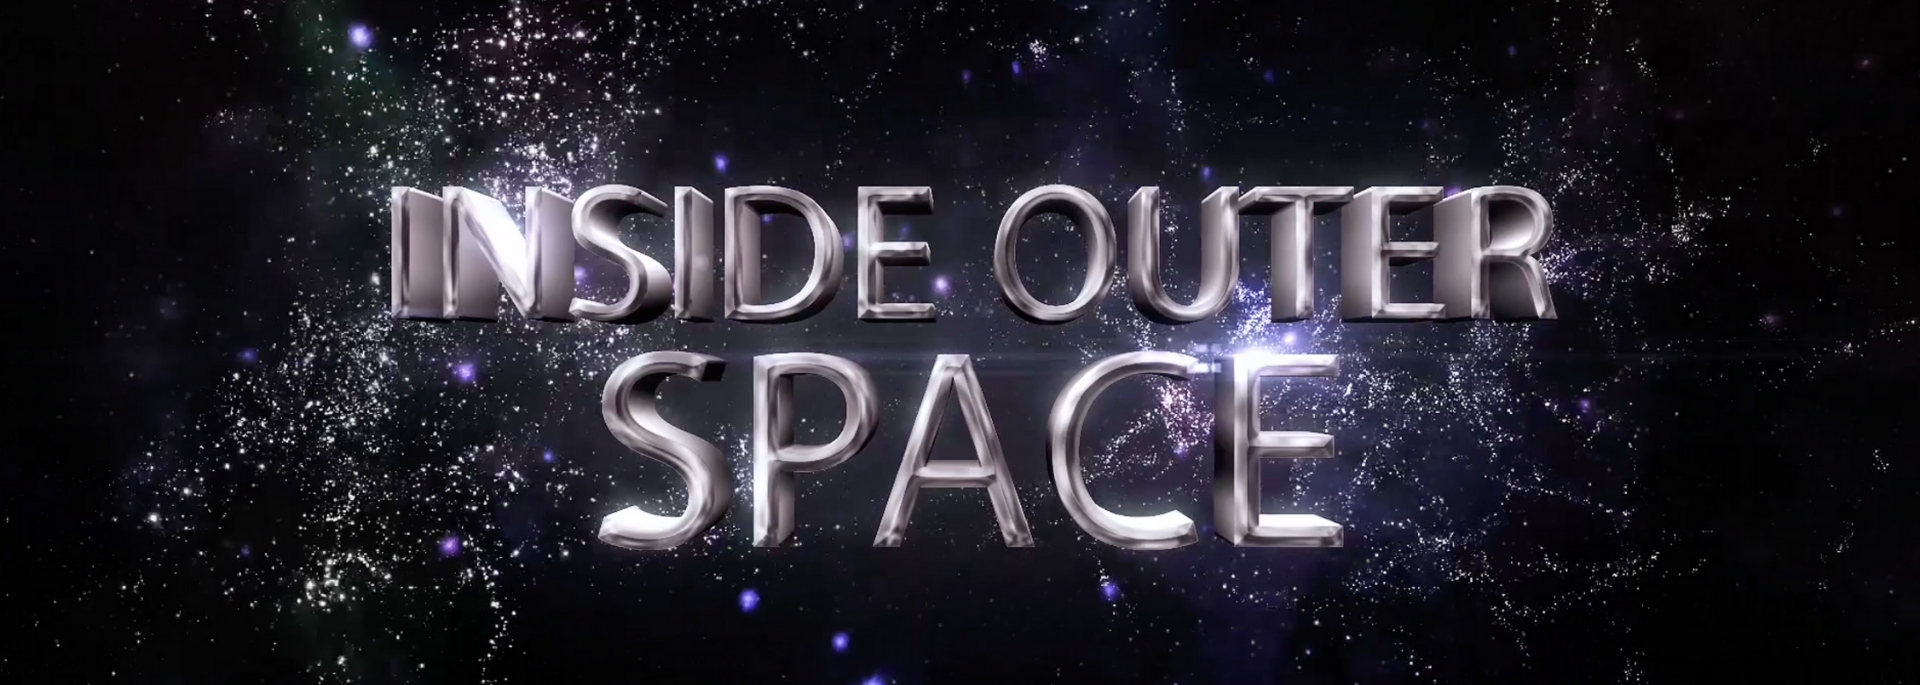 #INSIDE OUTER SPACE channel